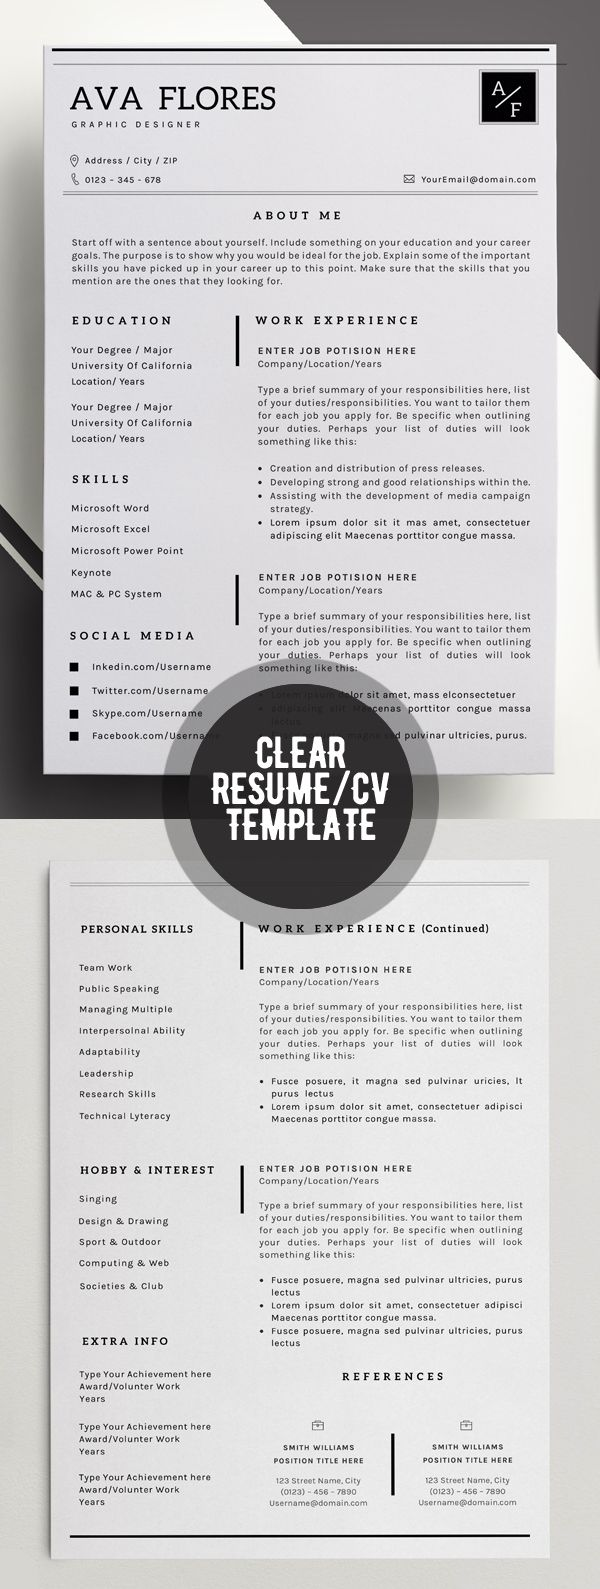 Best 25 Professional Resume Design Ideas On Pinterest Cv